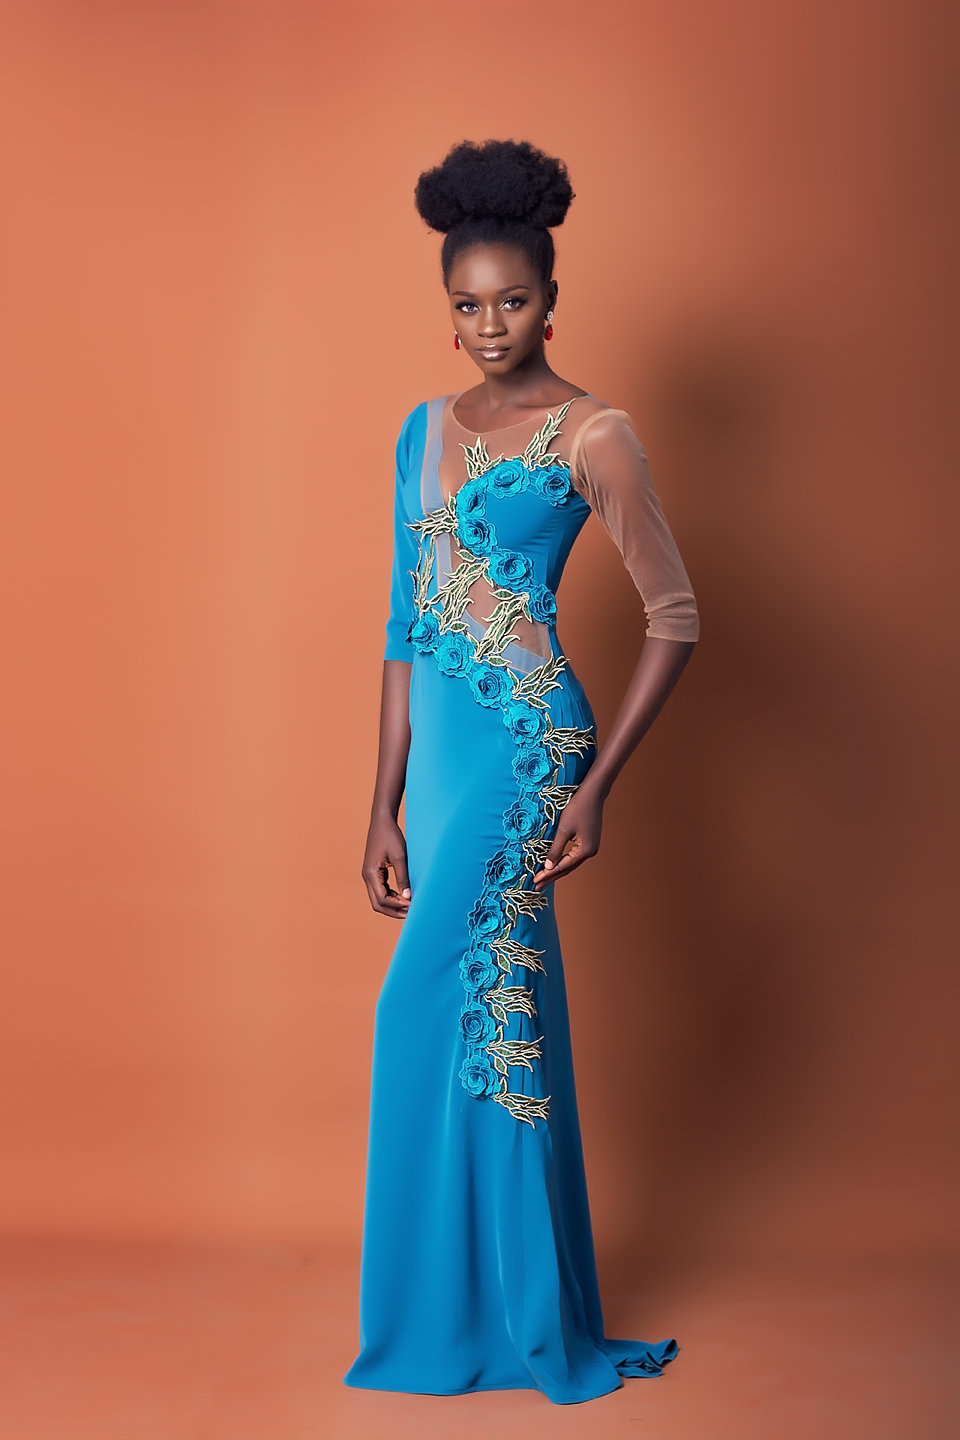 Micserah Fashion House Presents Spring Summer 2017 Lookbook